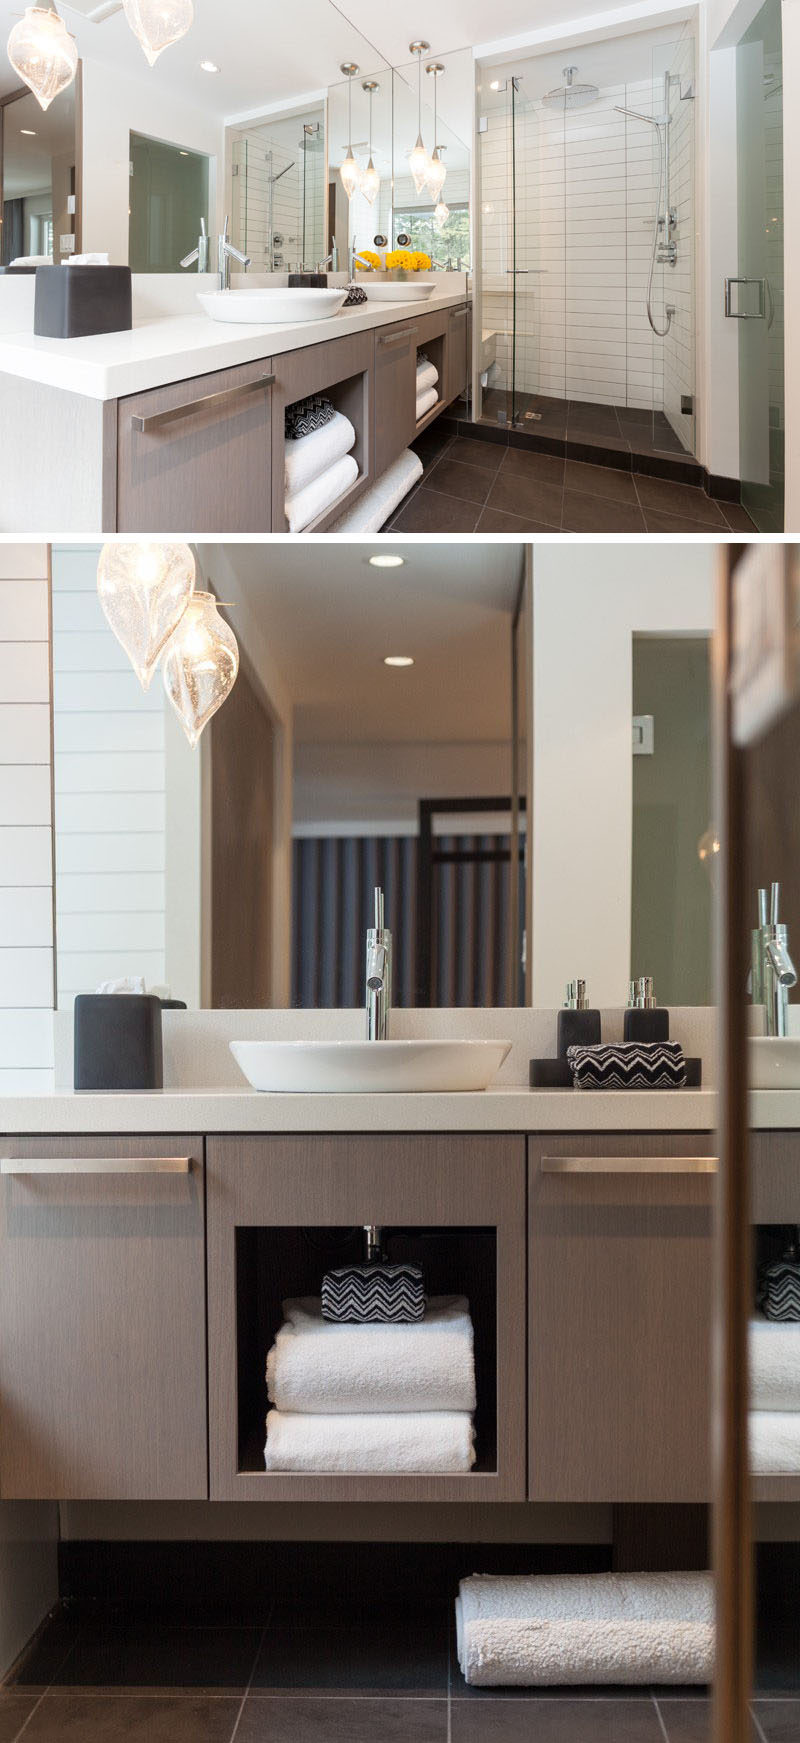 15 Examples of Bathroom Vanities That Have Open Shelving // Under each of the sinks in this bathroom by Robert Bailey sits an open shelf for storing towels and face cloths.